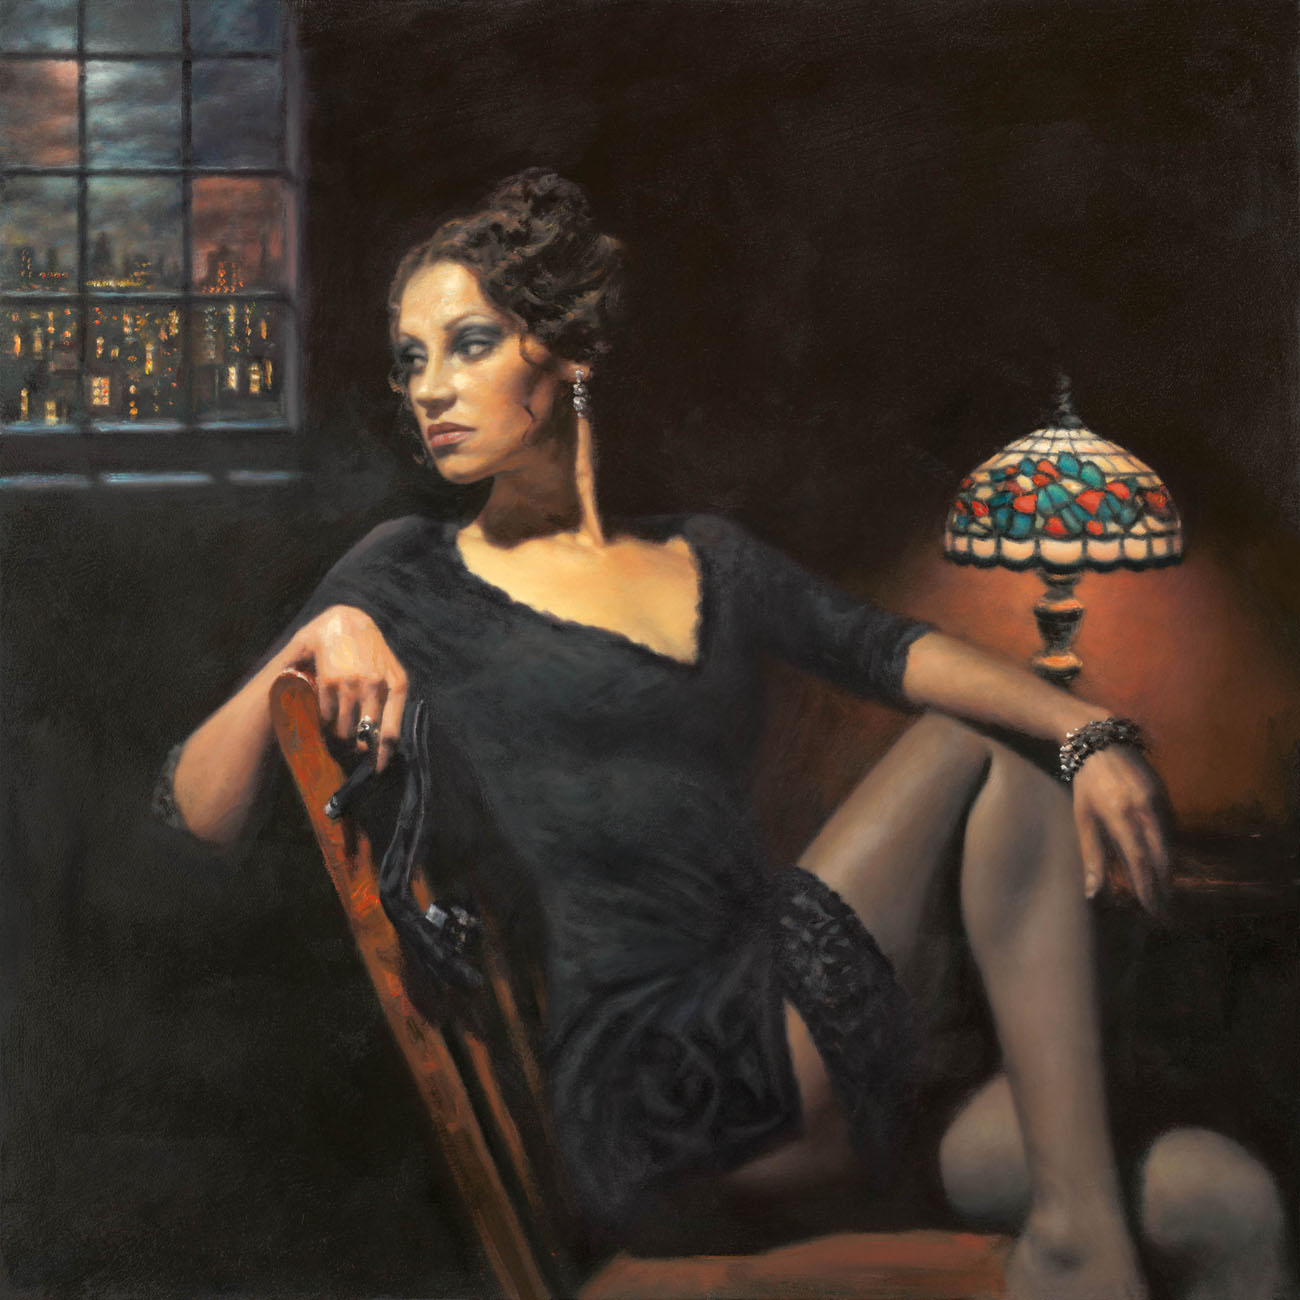 hamish-blakely-the-night-is-hers-HBGC53-r.jpg